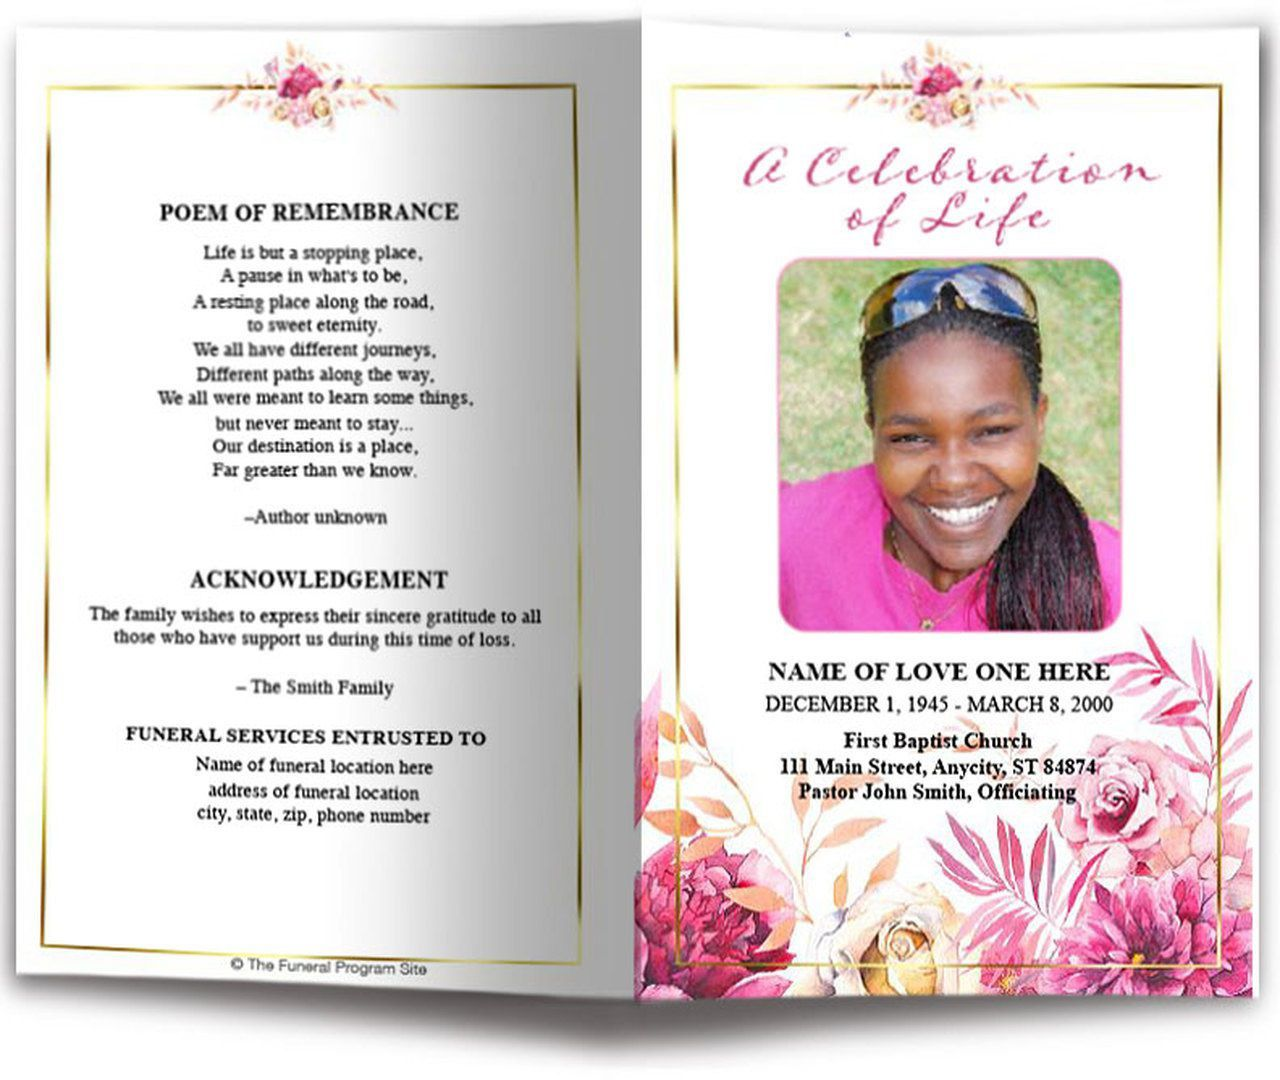 001 Staggering Free Funeral Program Template Word High Definition  Microsoft 2010 Tri FoldFull